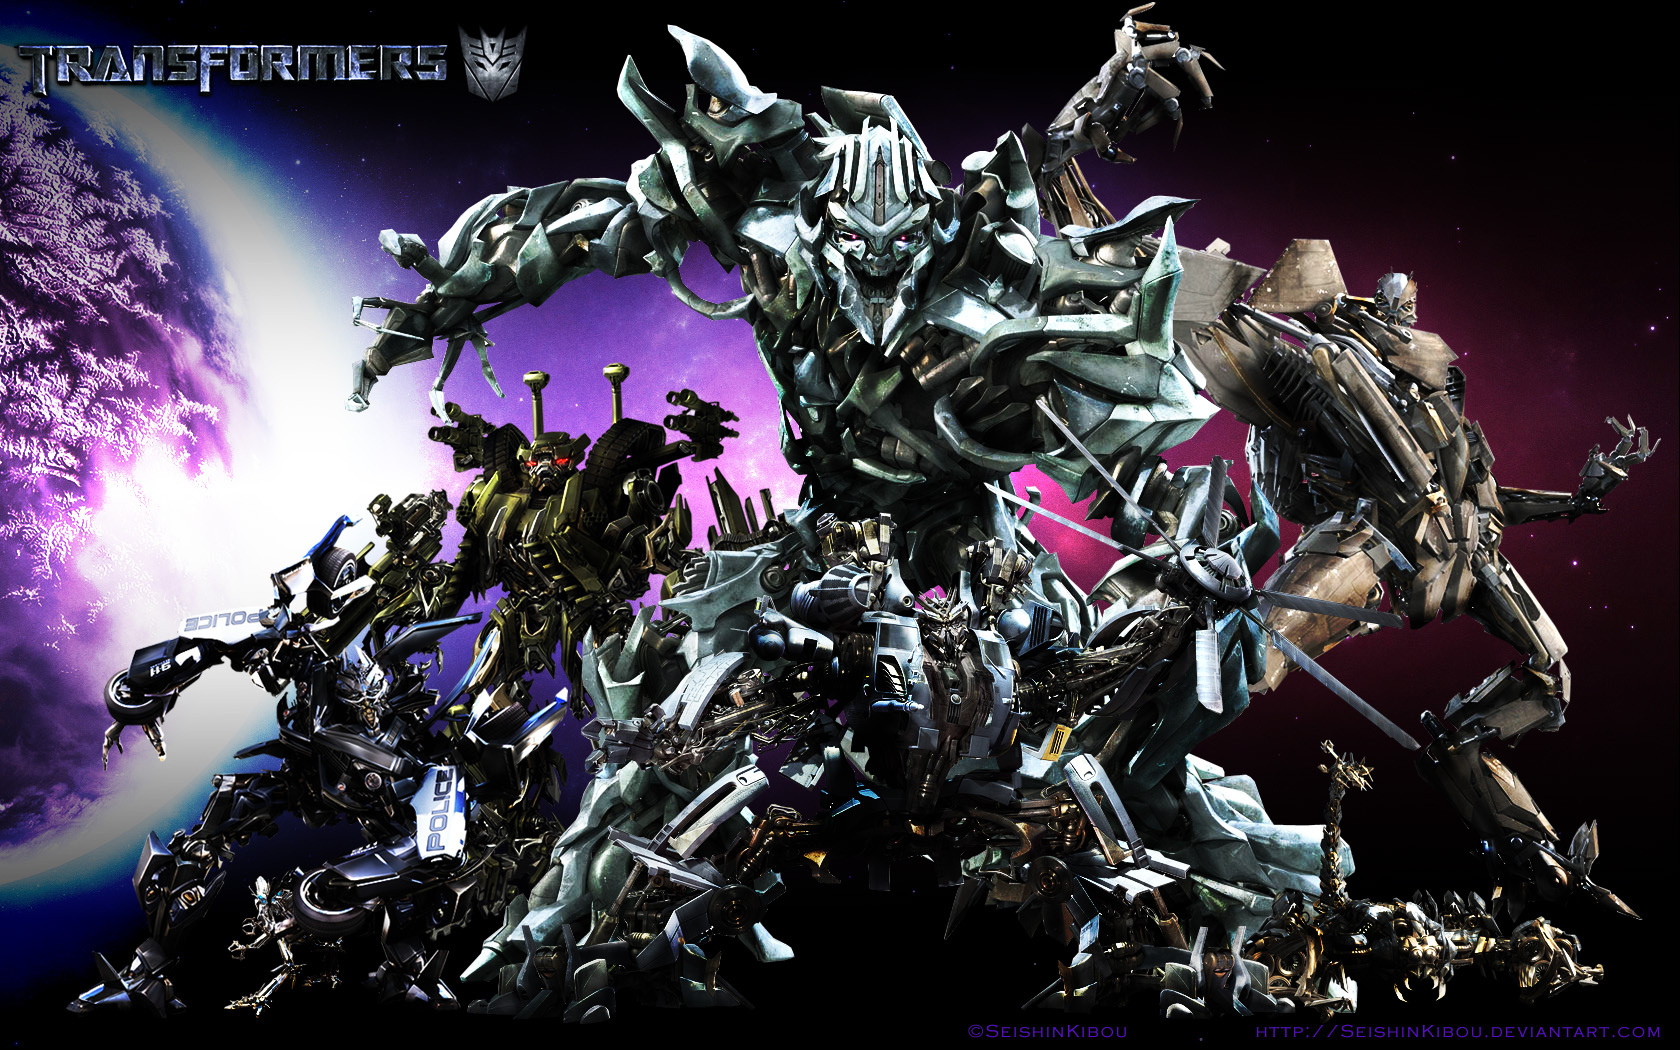 autobots decepticons transformers movie wallpaper Car Pictures 1680x1050